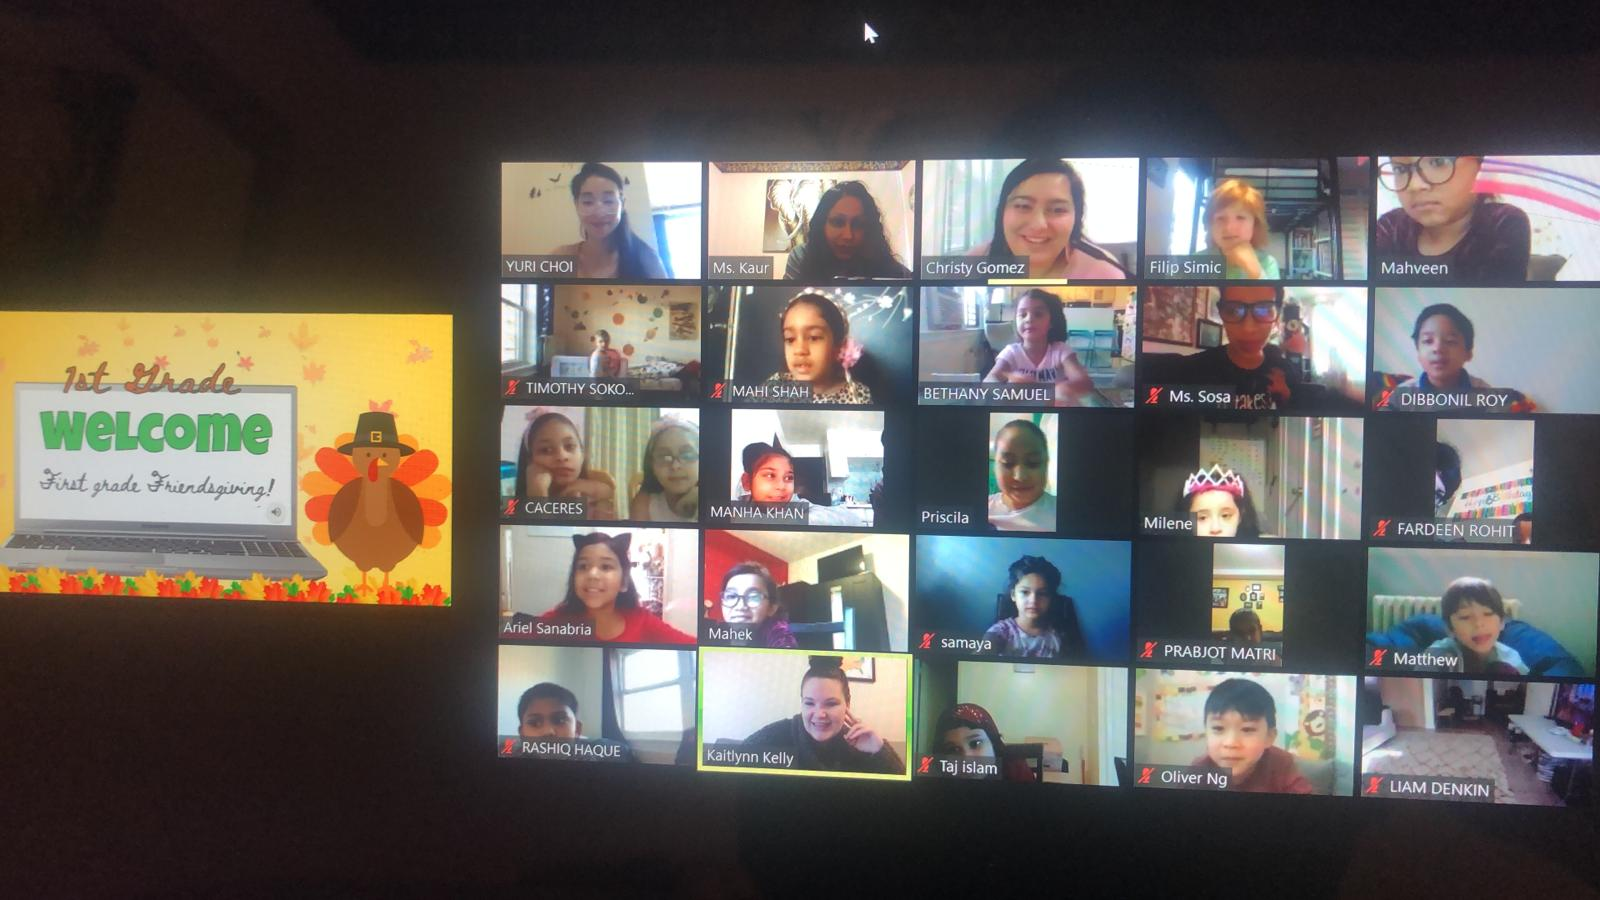 Students on a Zoom call watch a Friendsgiving presentation